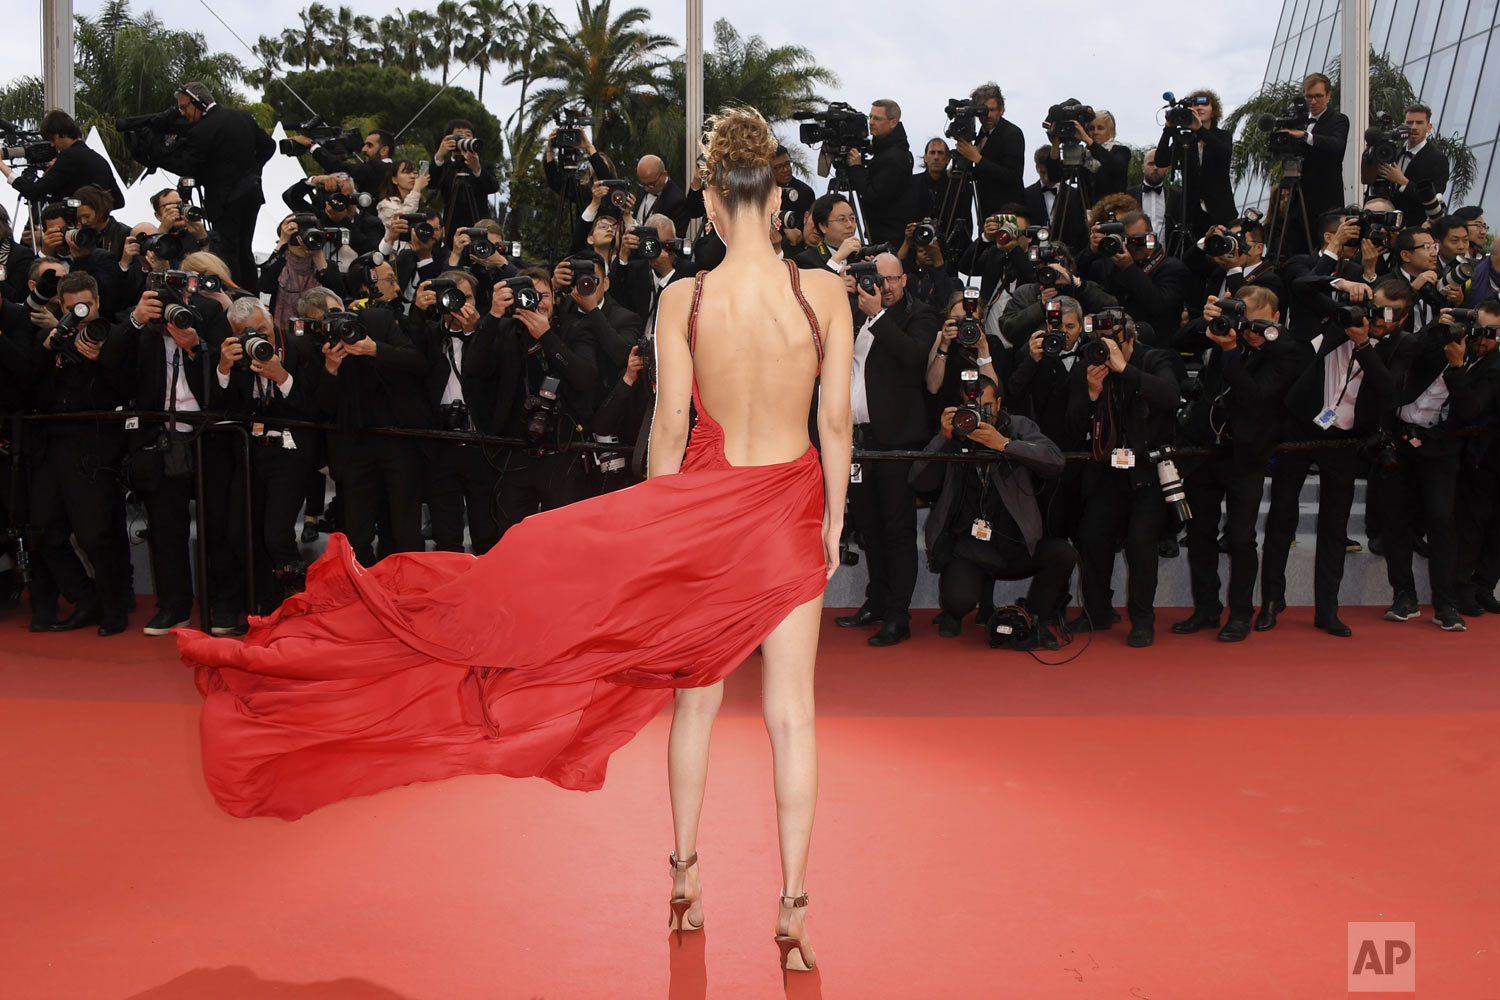 Model Bella Hadid poses for photographers at the photo call for the film 'Pain and Glory' at the 72nd international film festival, Cannes, southern France, Friday, May 17, 2019. (Photo by Arthur Mola/Invision/AP)